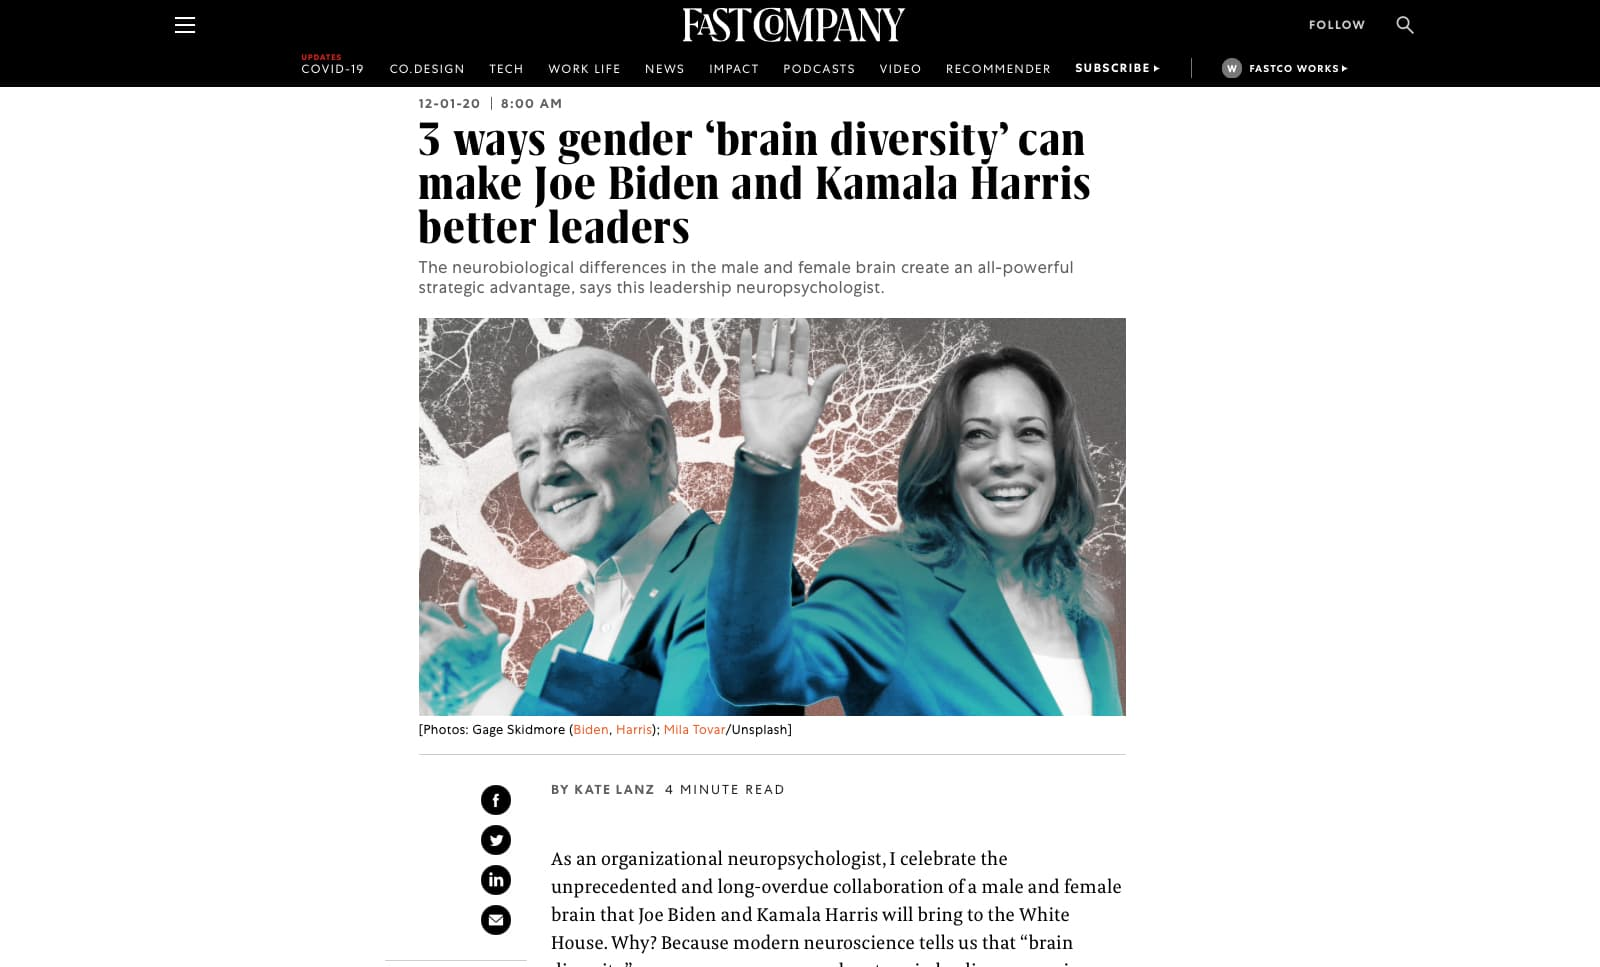 3 ways gender 'brain diversity' can make Joe Biden and Kamala Harris better leaders